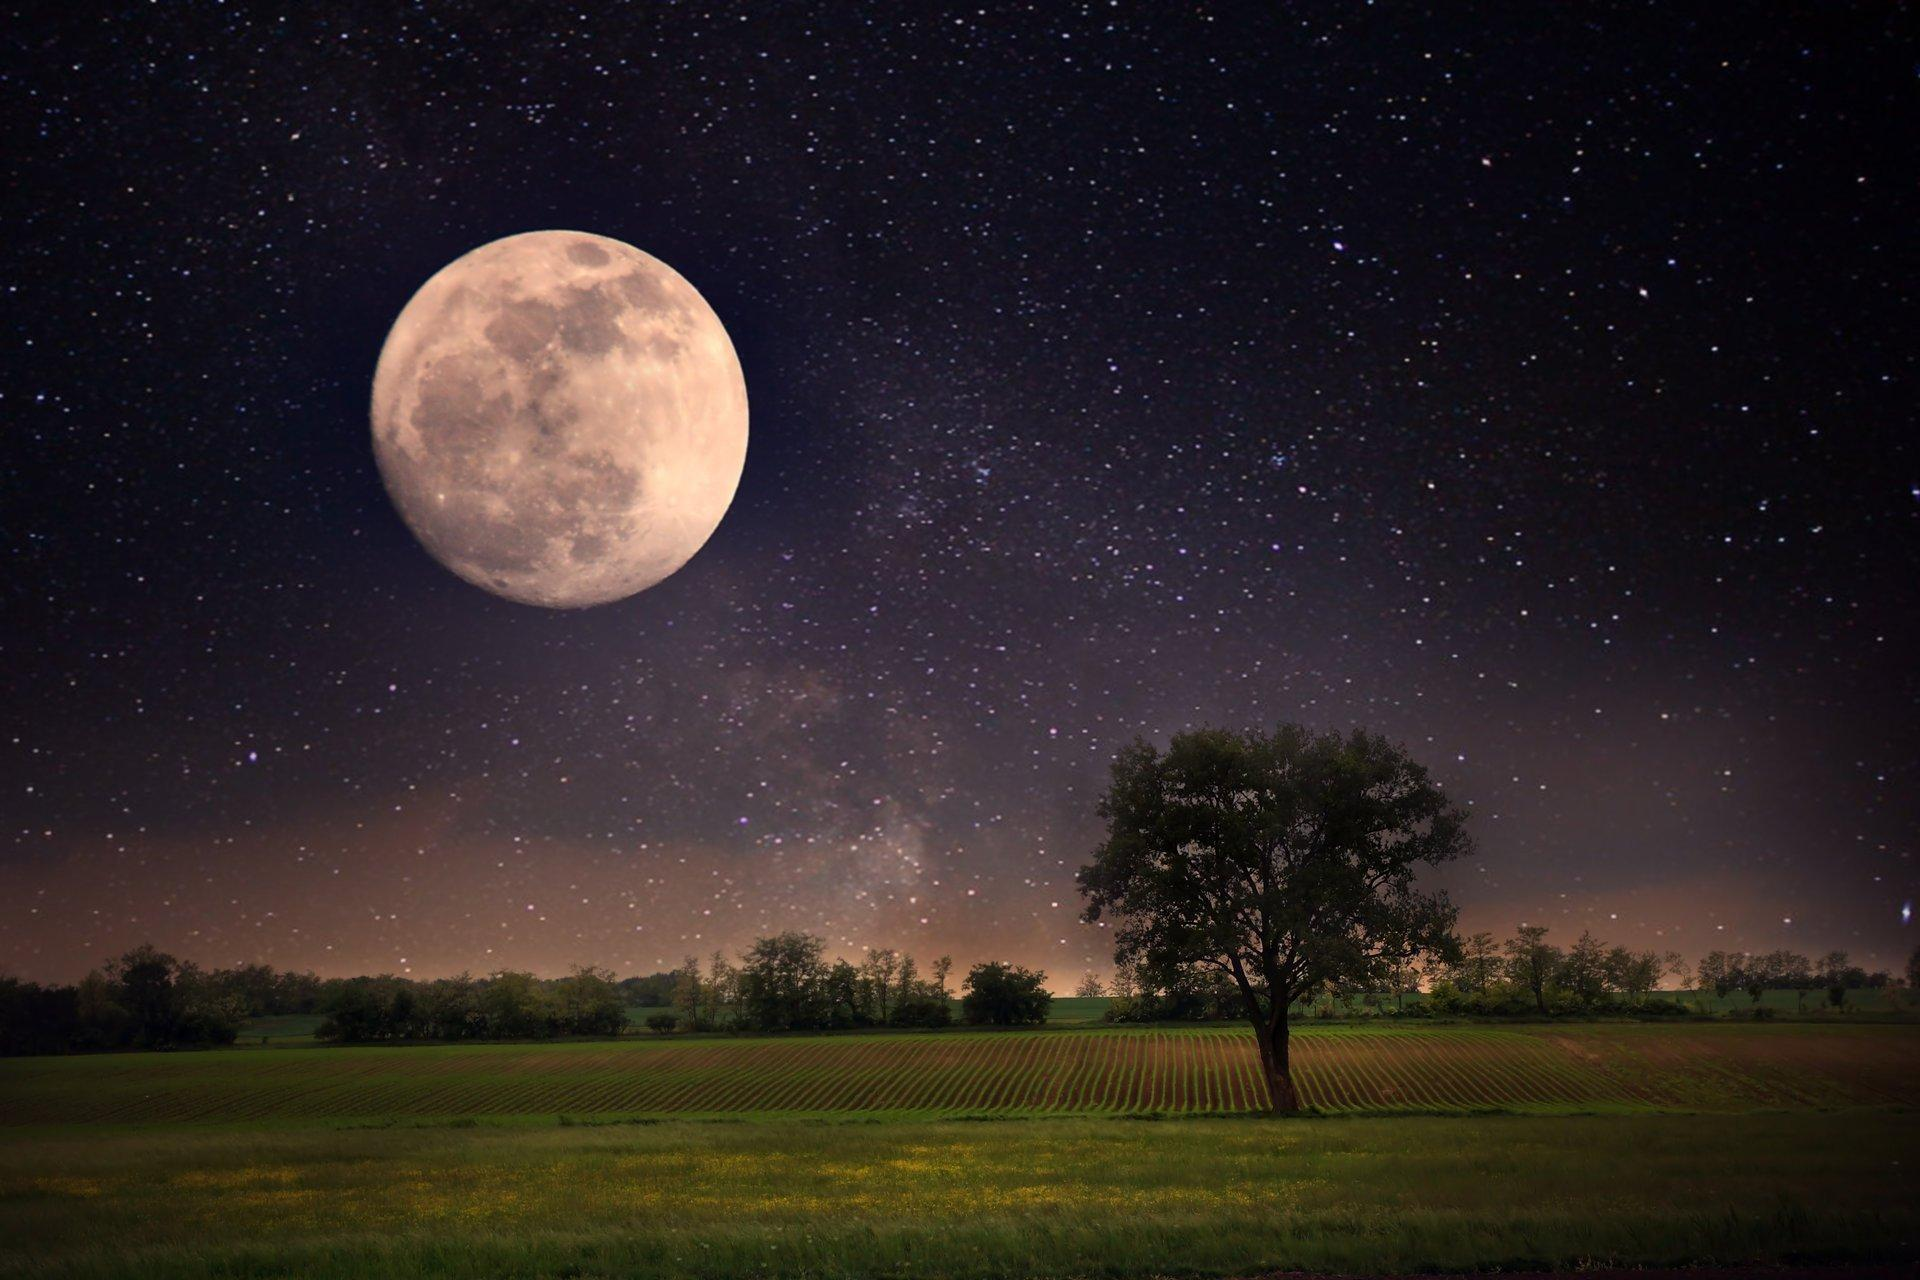 moon night landscape stars full moon sky beautiful scene nature ...